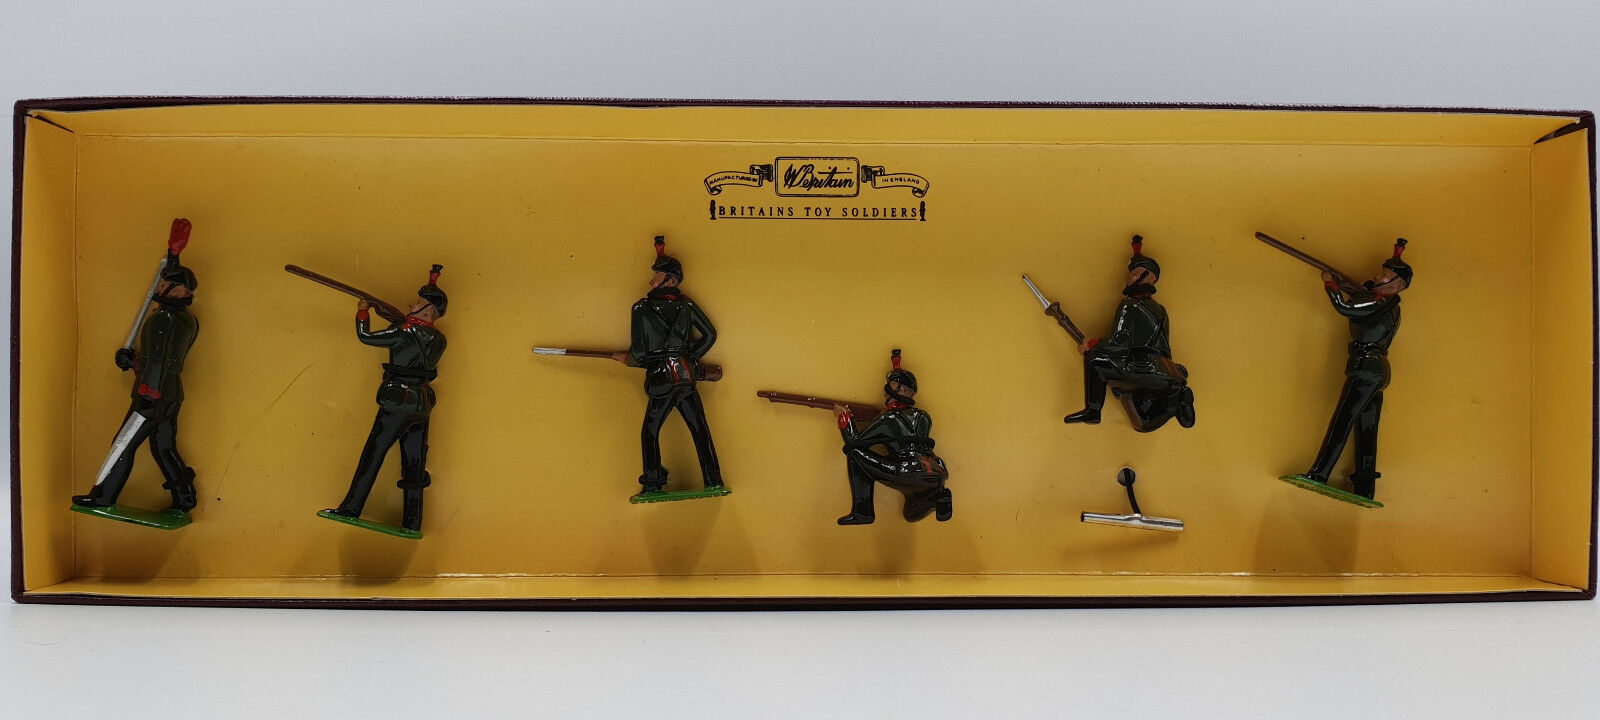 ARMY   KINGS ROYAL RIFFLE CORPS METAL SOLDIERS MADE CIRCA 1995 BY BRITAINS 8822